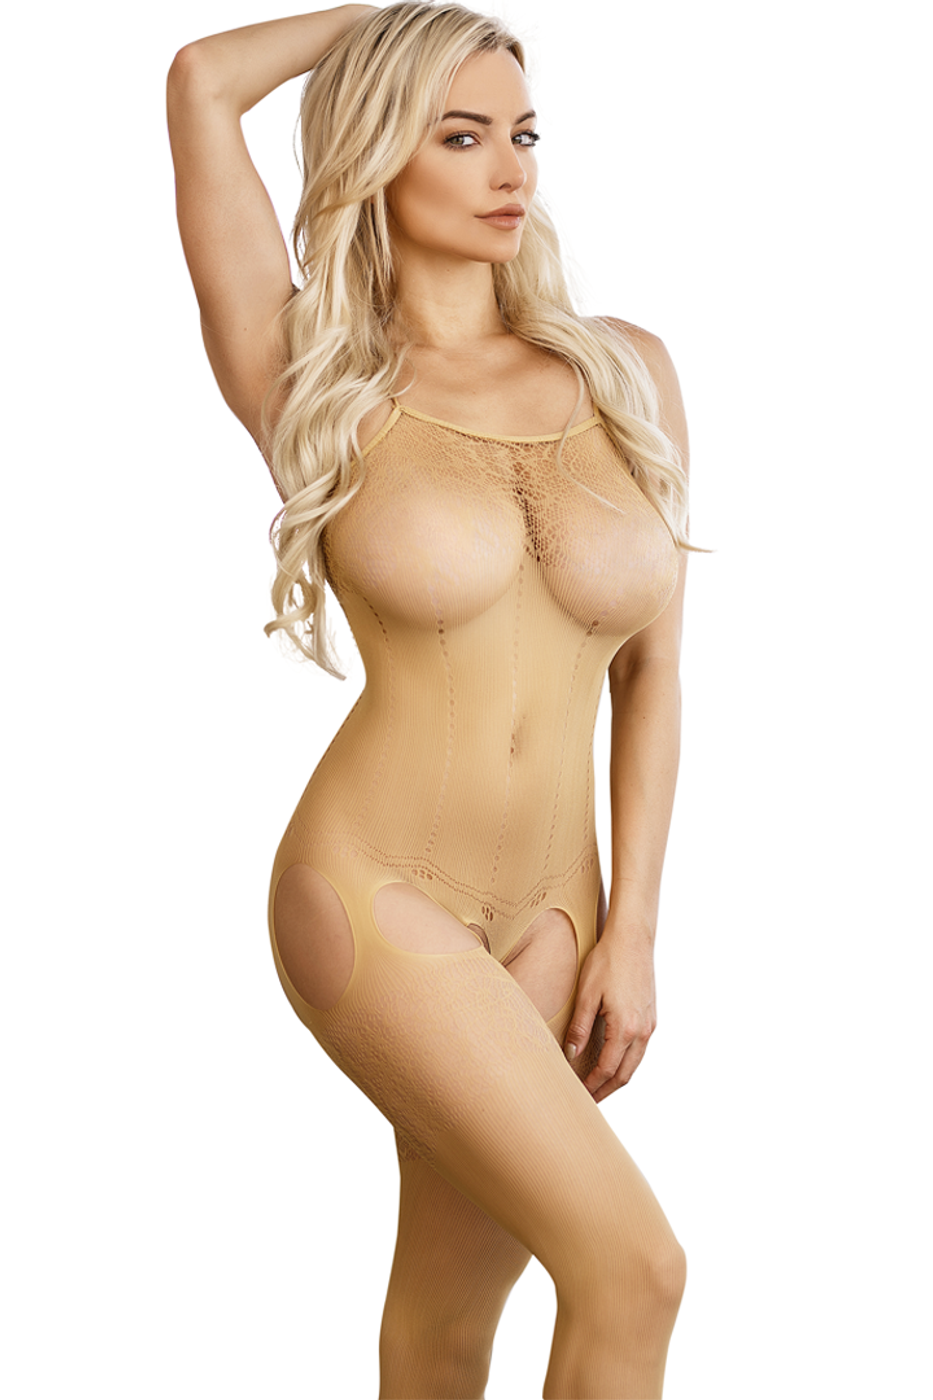 900125a9d92 Shop this women s nude beige body stocking lingerie featuring sheer floral  lace design